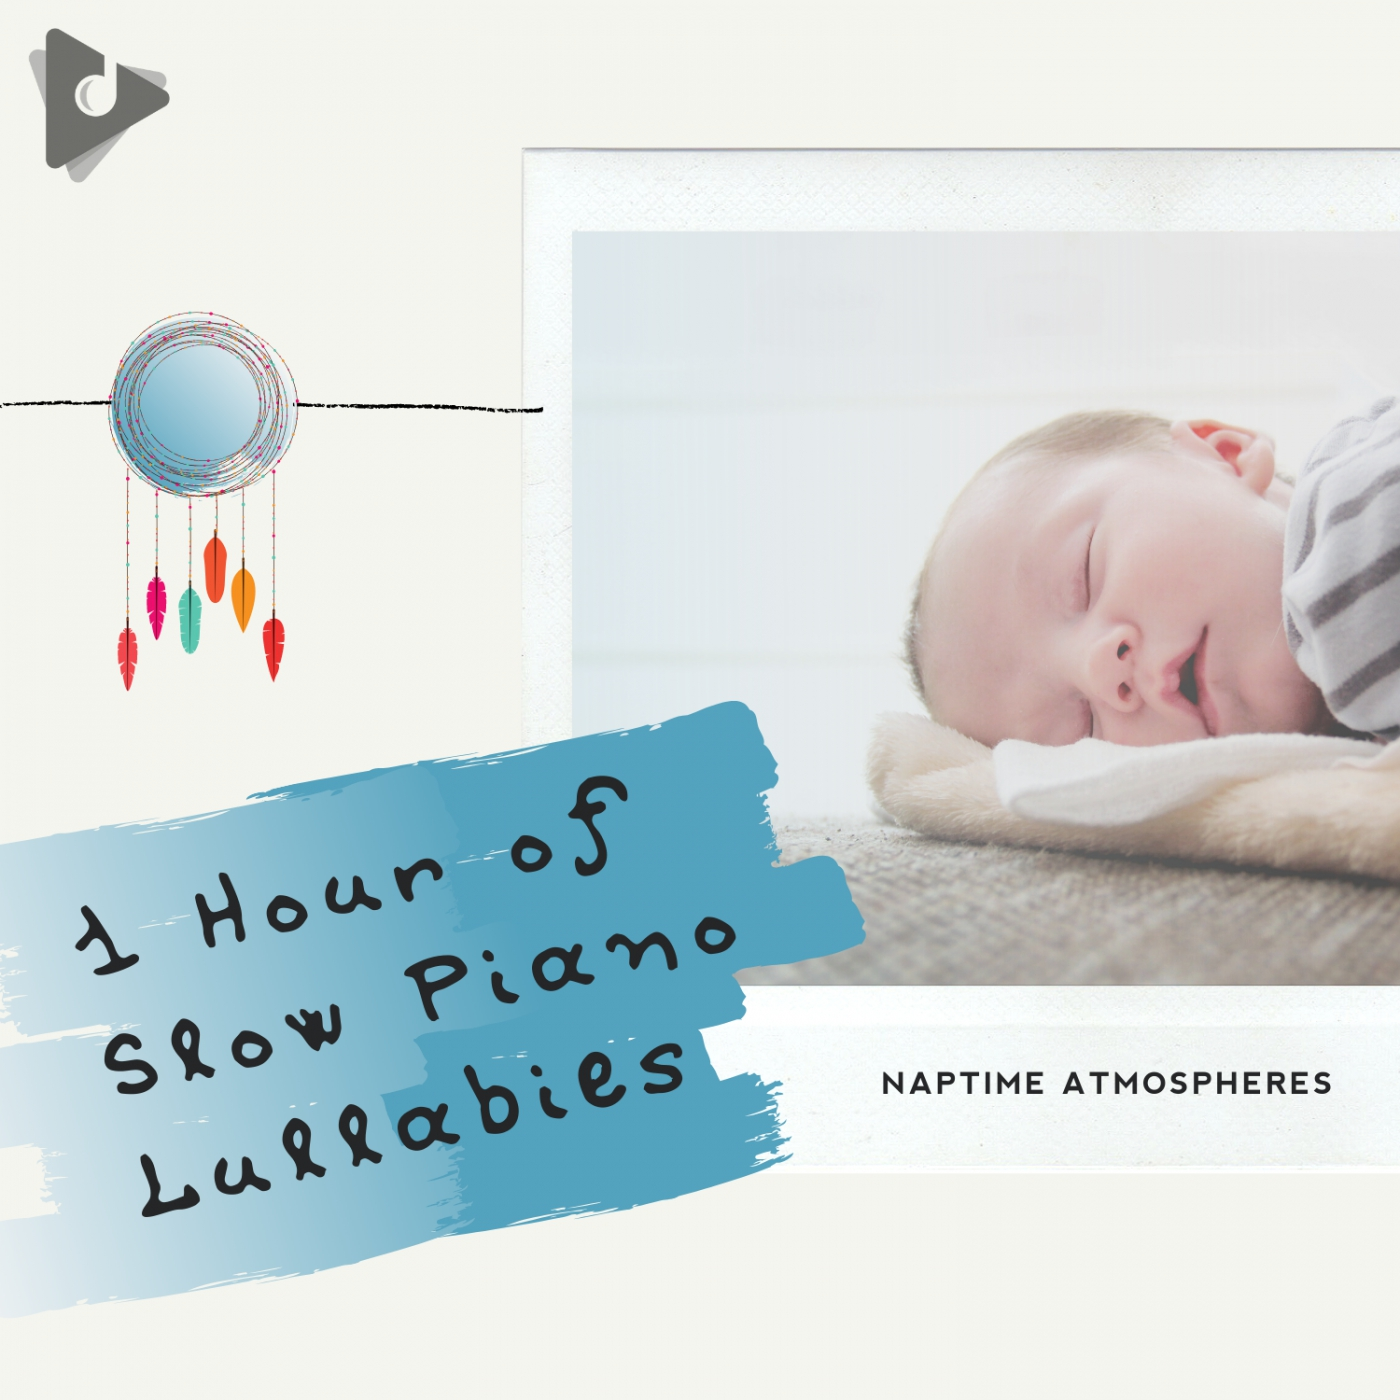 1 Hour of Slow Piano Lullabies